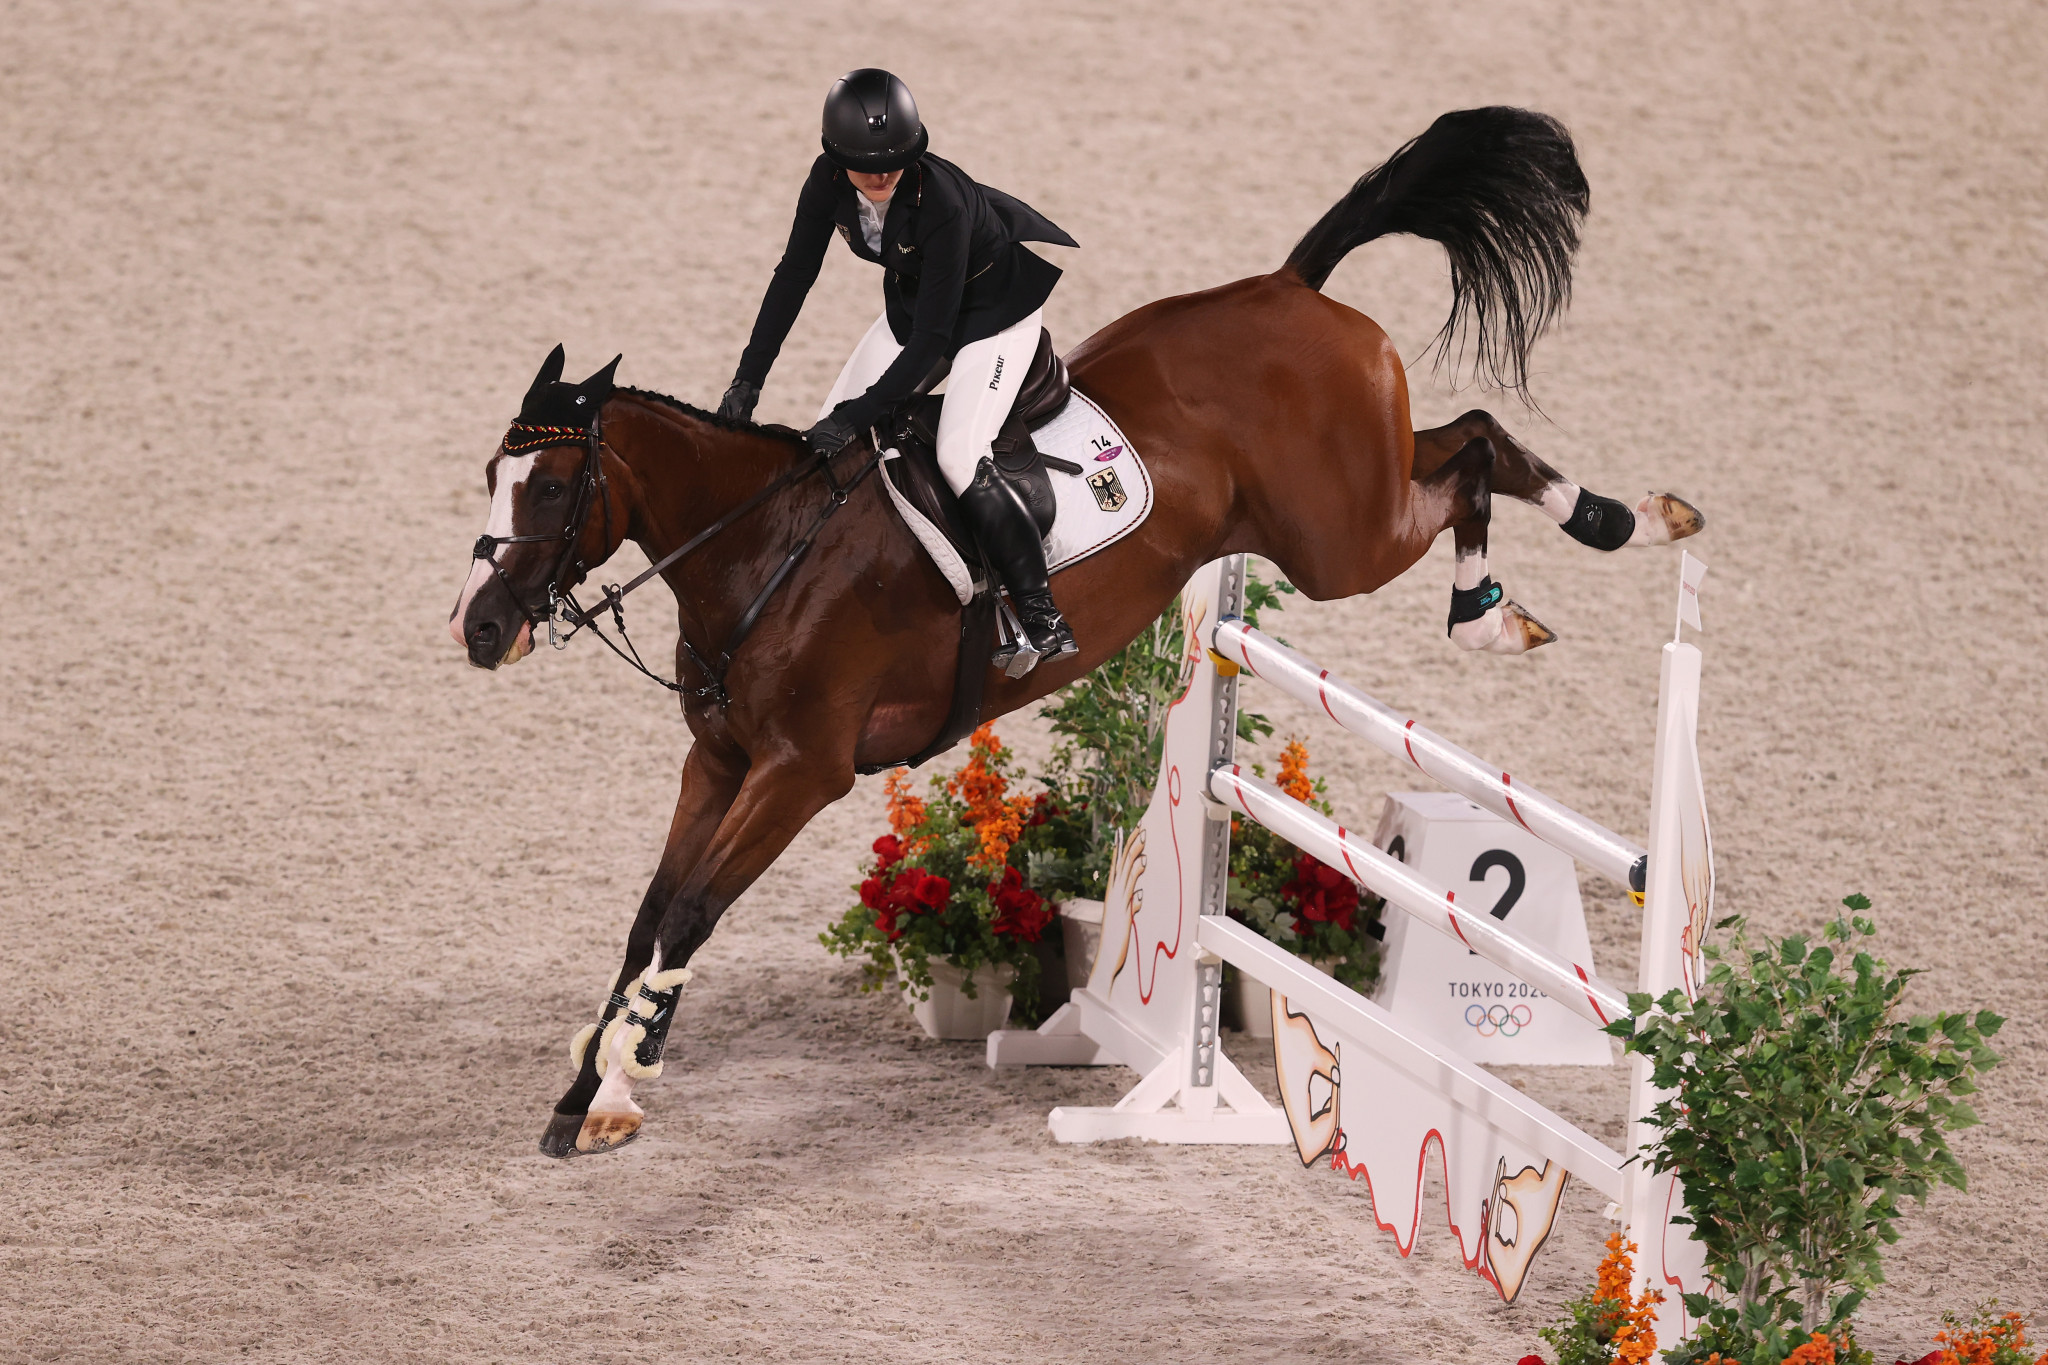 Julia Krajewski won the individial eventing title - with the German the fist woman to ever win the event ©Getty Images